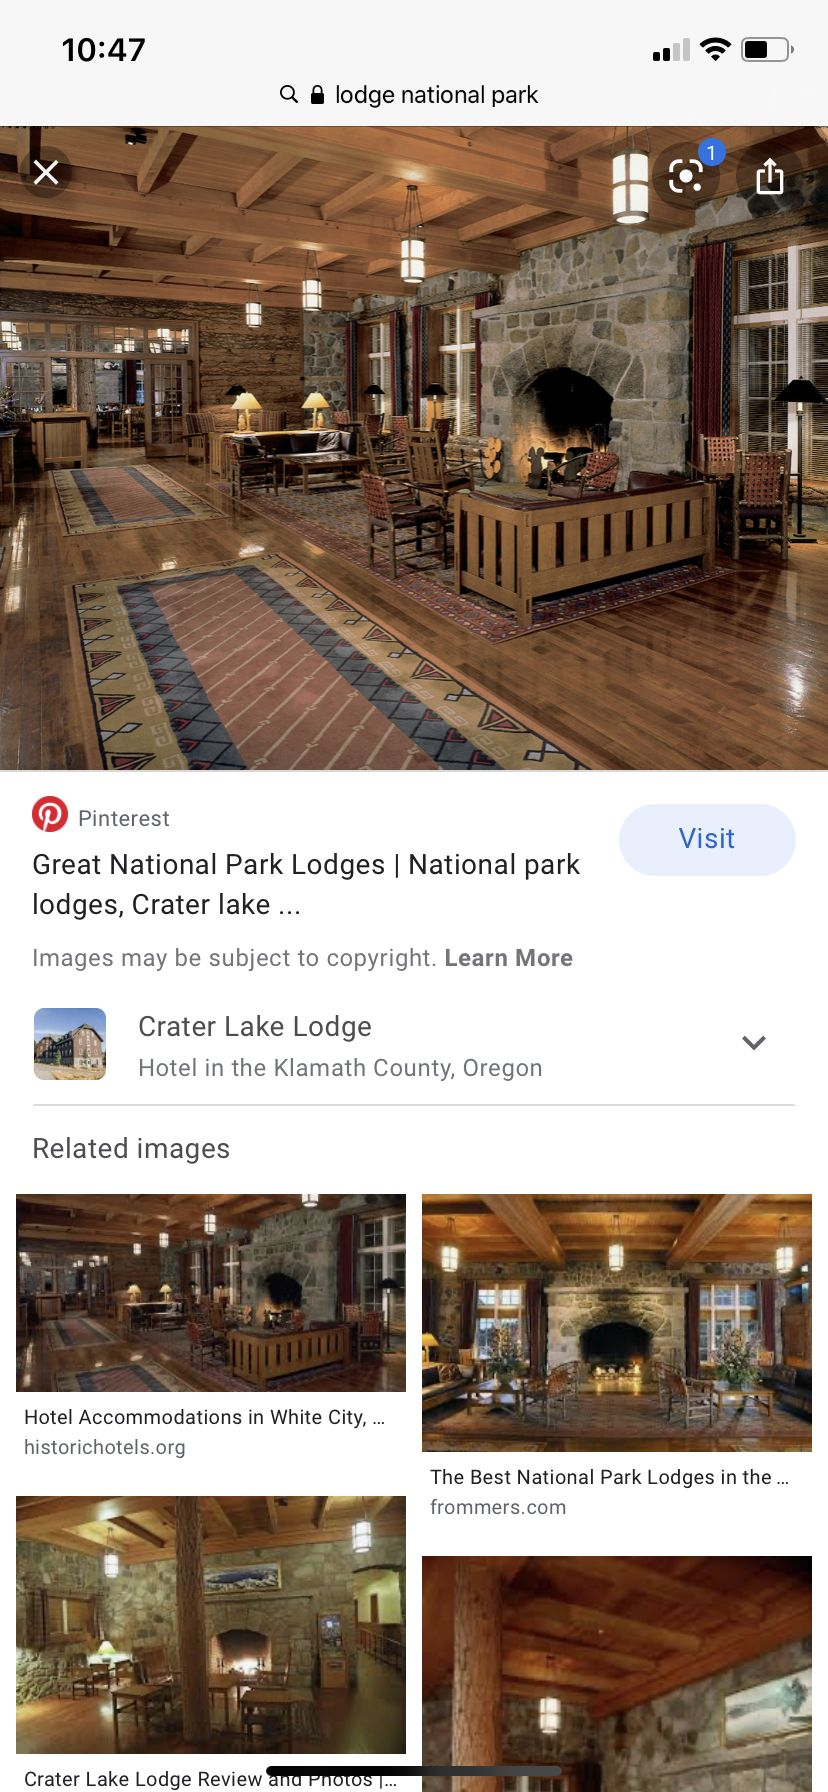 Pin By Karen Blaney On Main Street Manor House In 2020 National Park Lodges Crater Lake Lodge Klamath